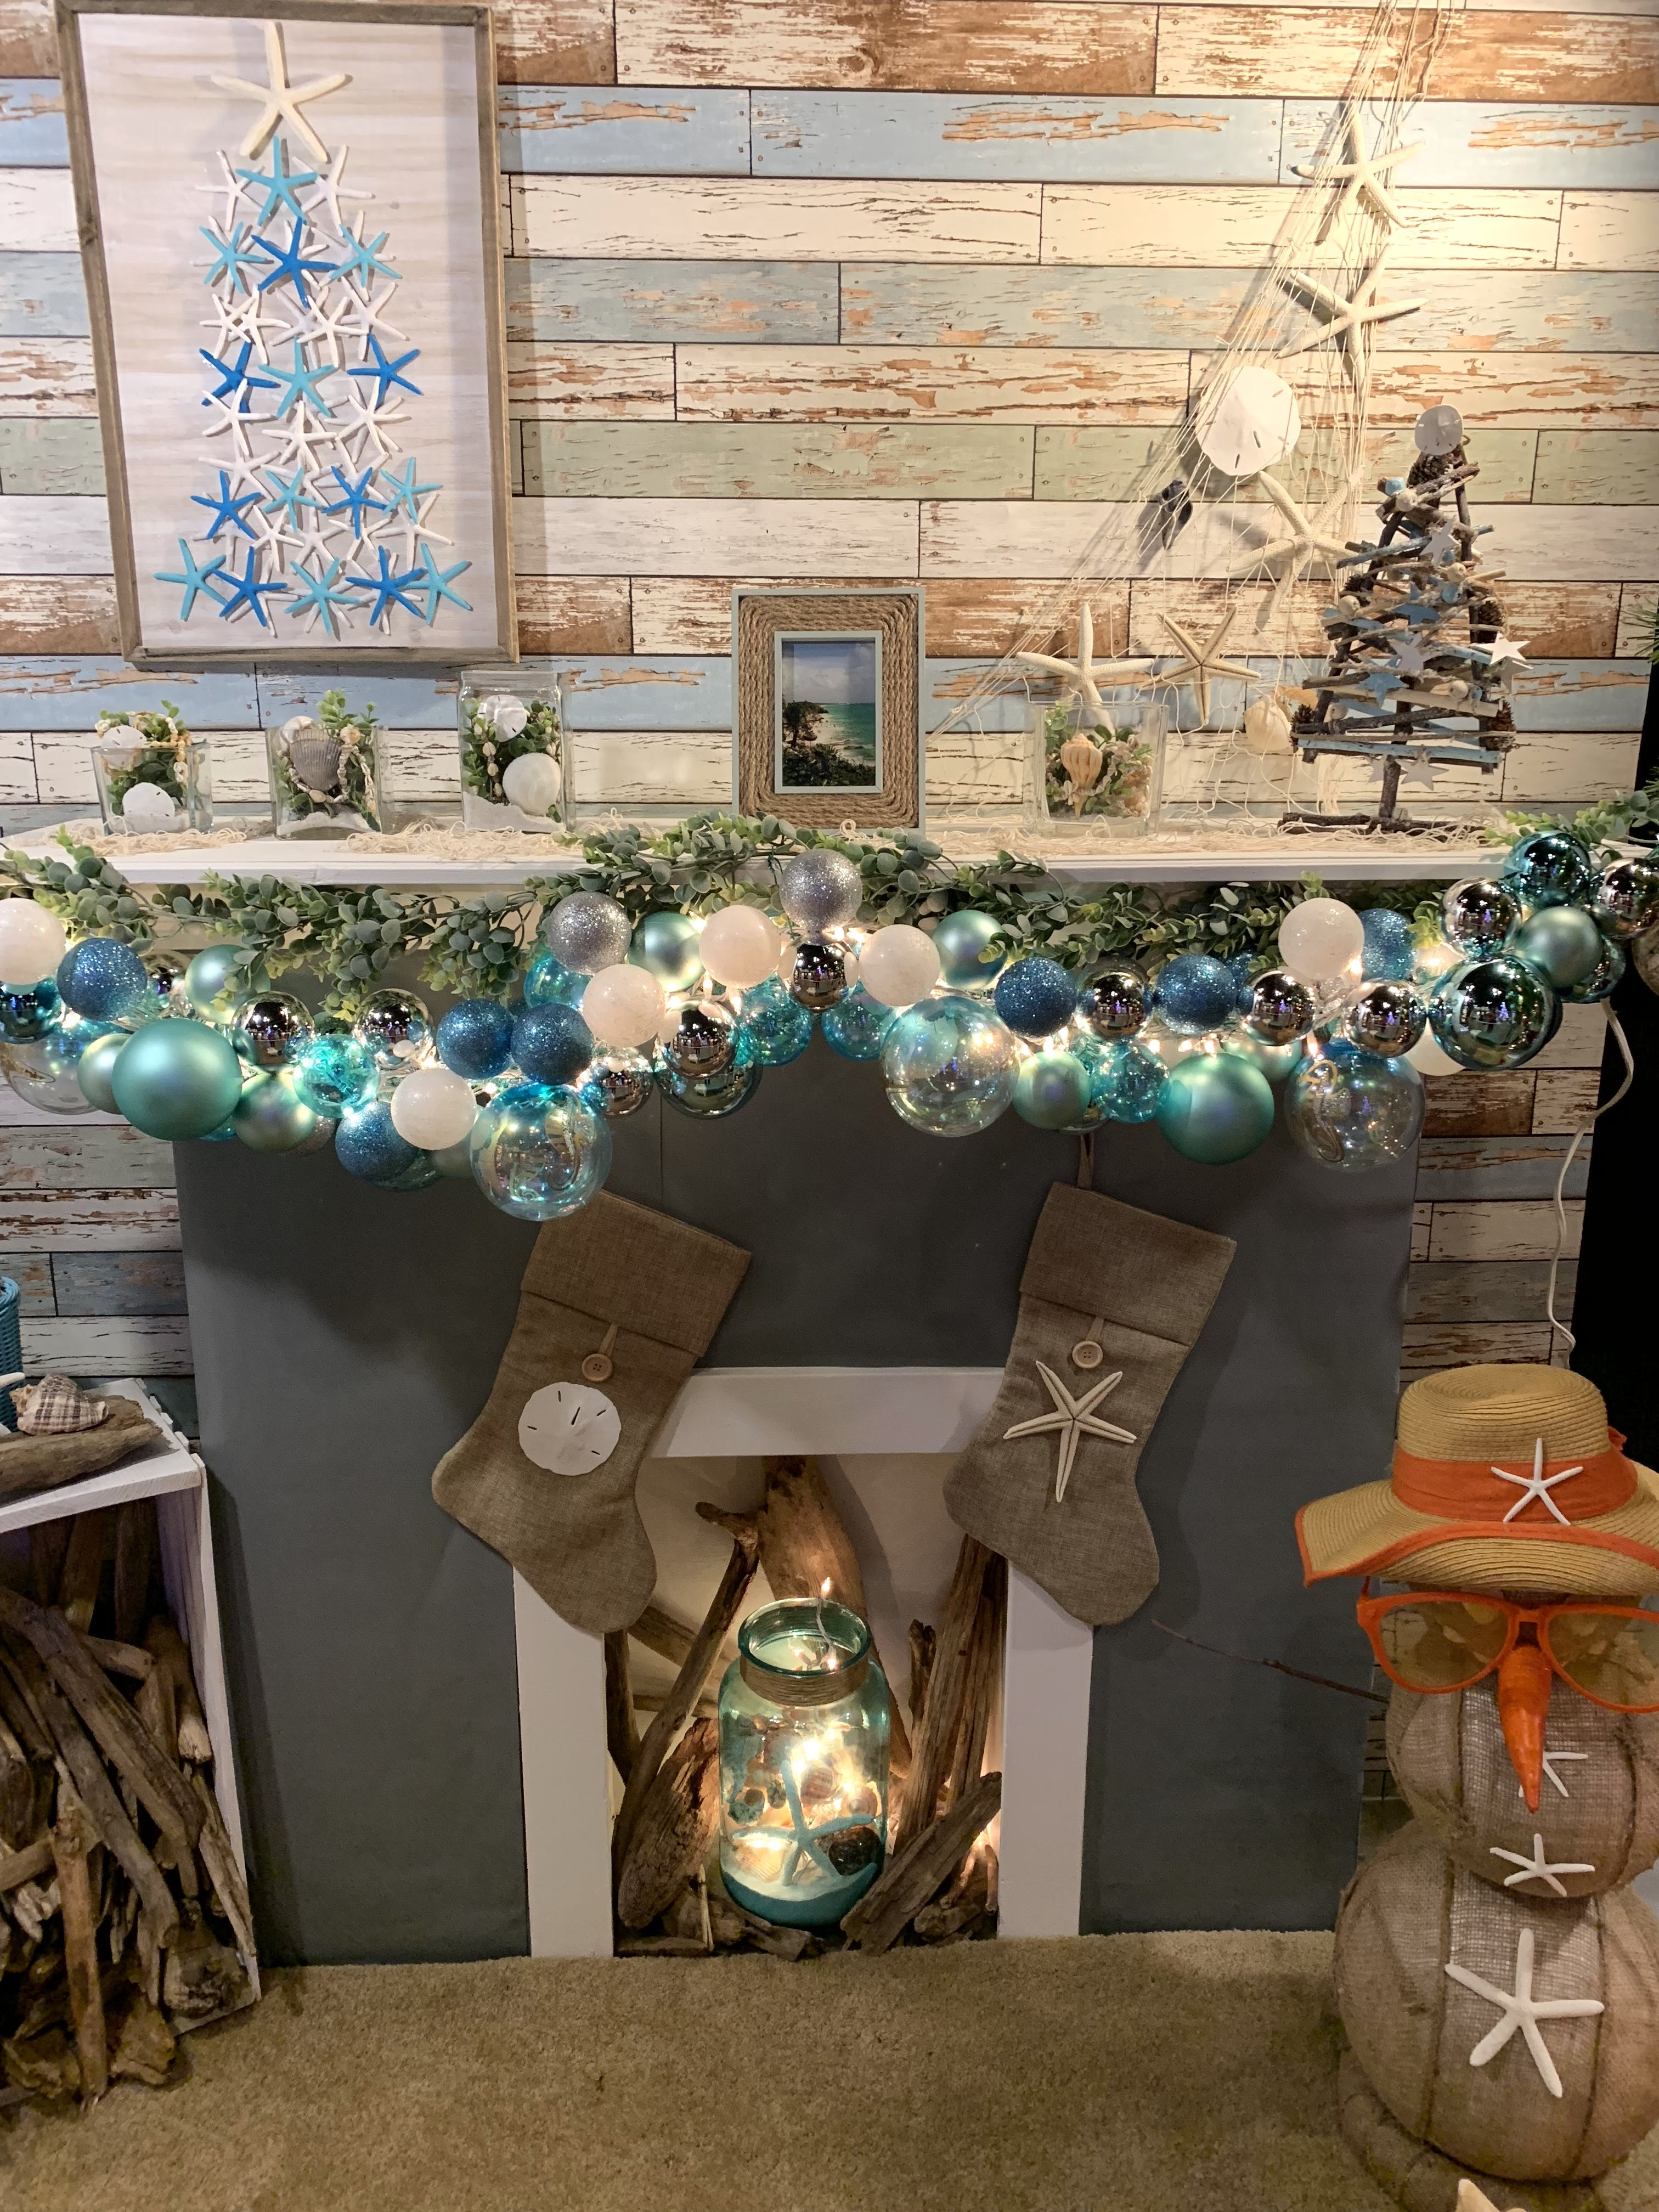 Christmas Decors in Gray Wooden Fireplace Mantel